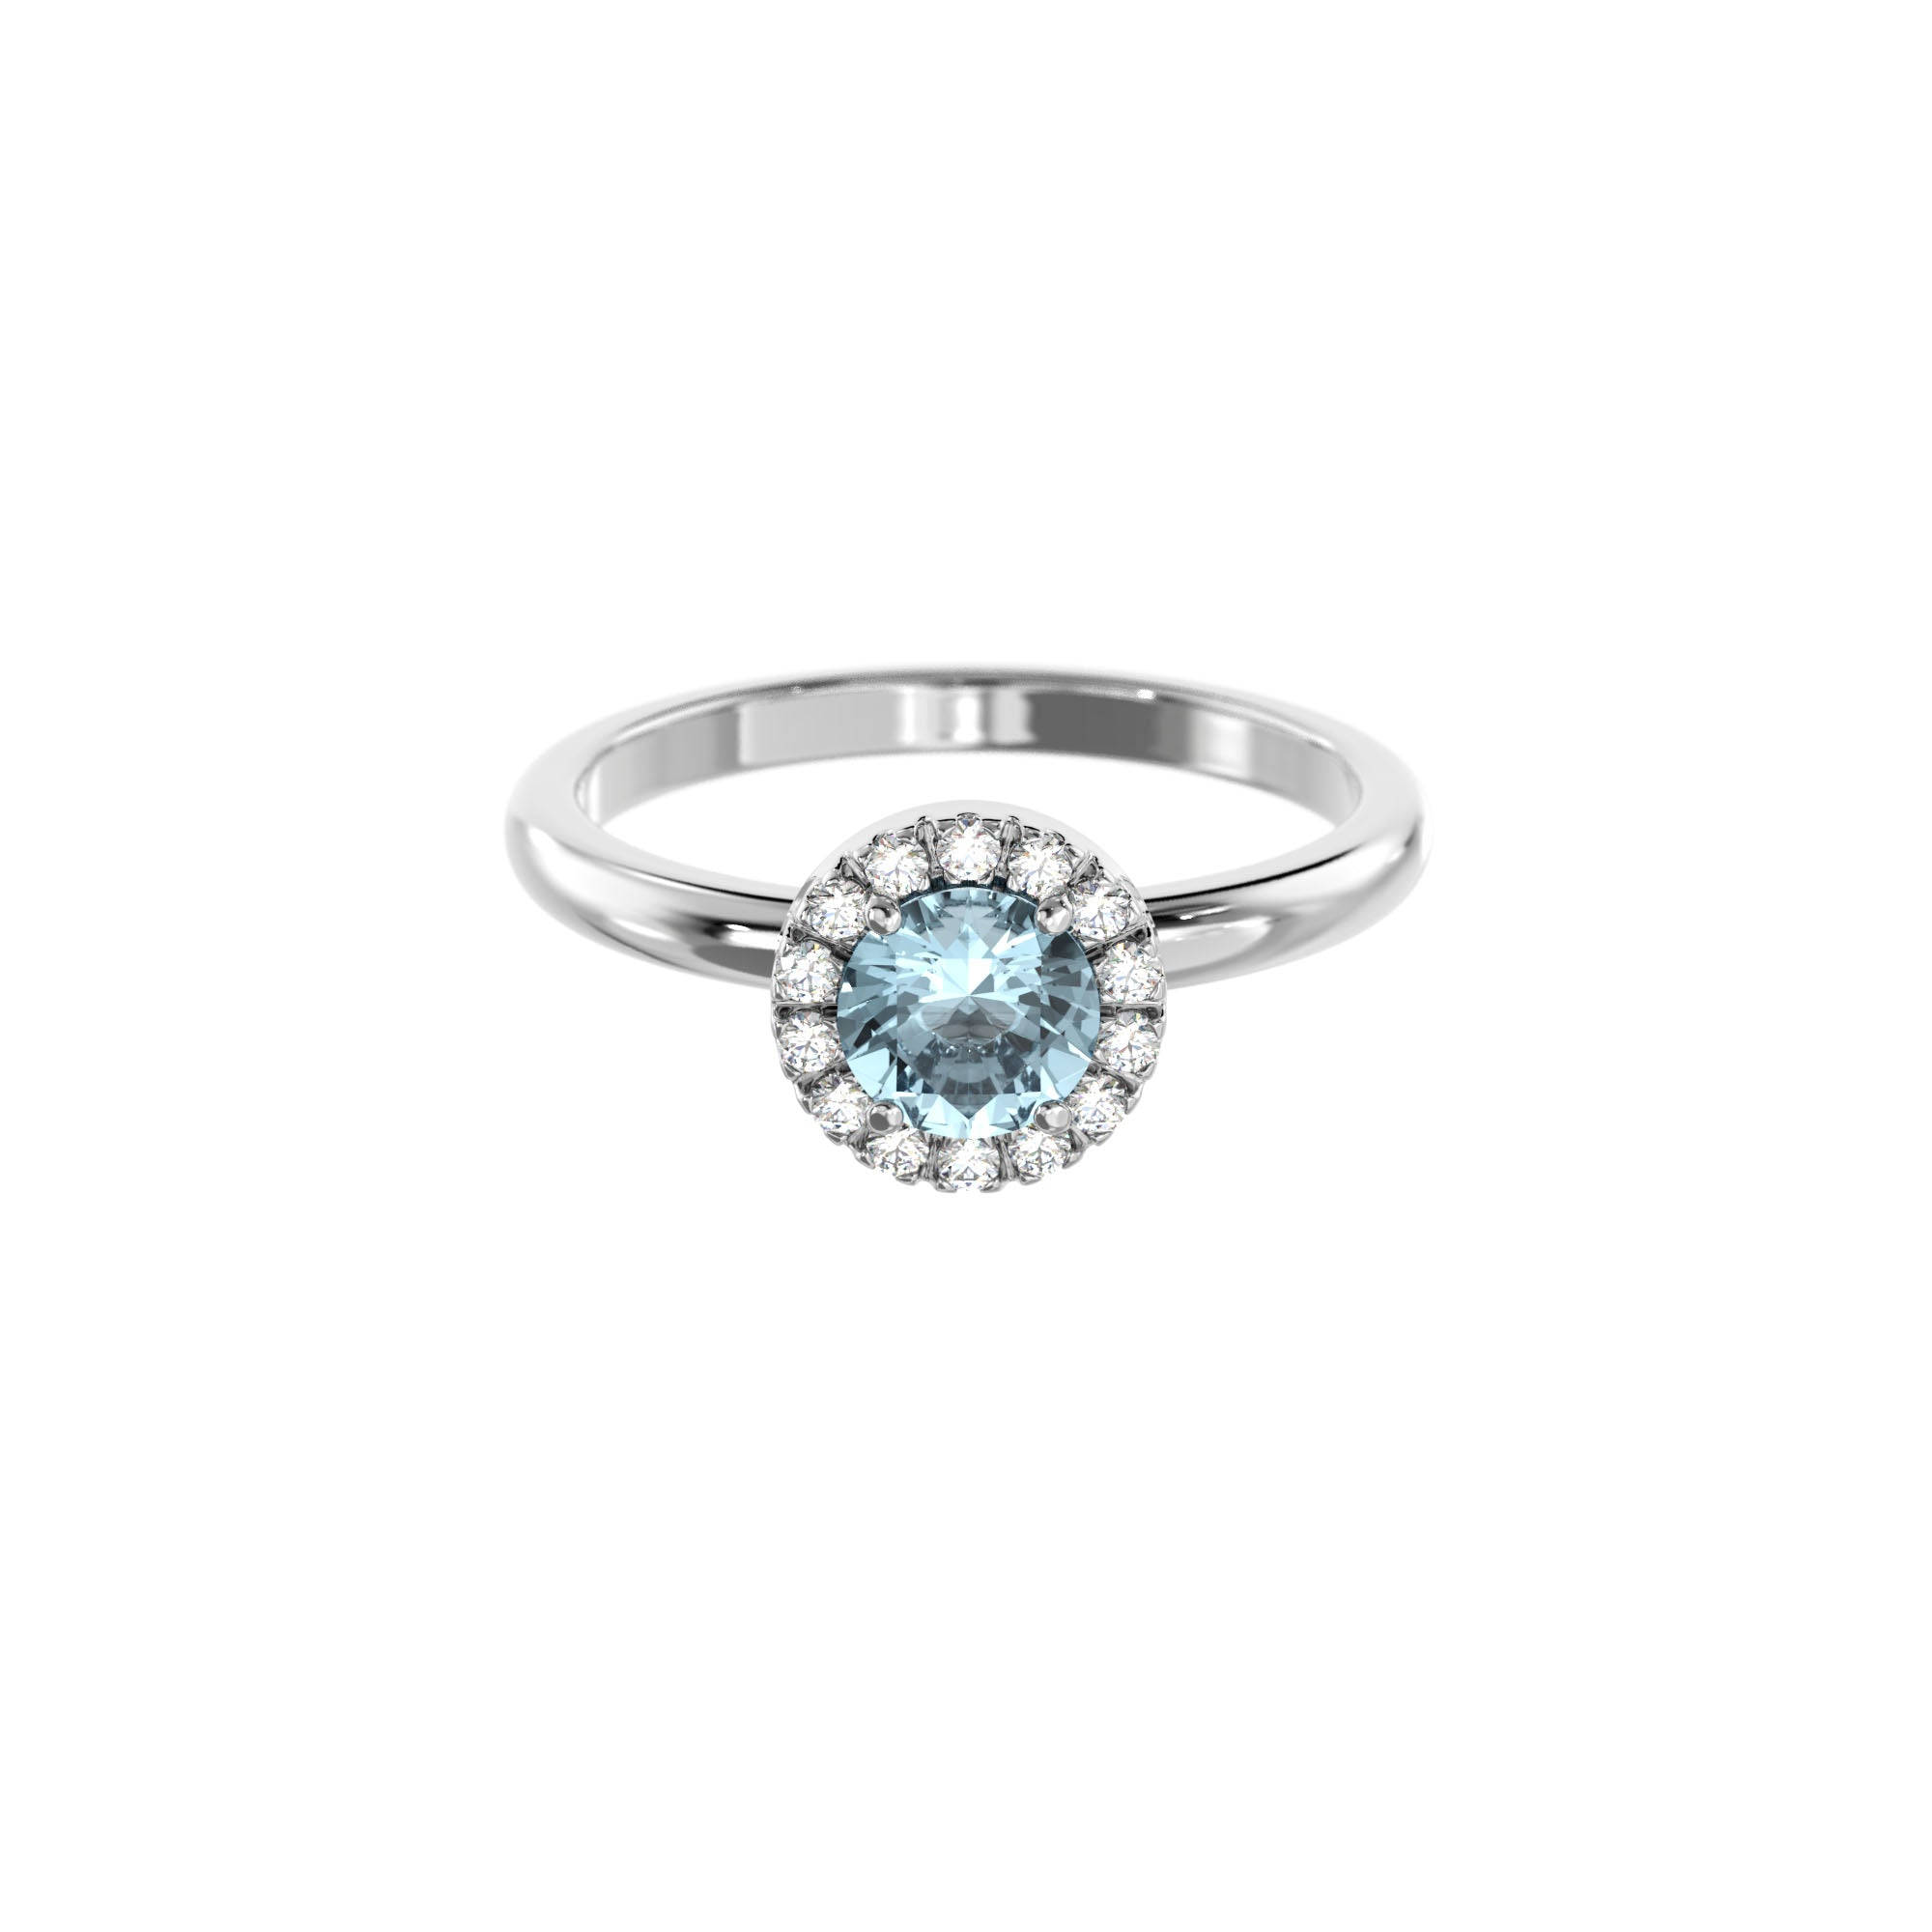 925 Silver Luxe Series Ring - Lydia (Aquamarine)